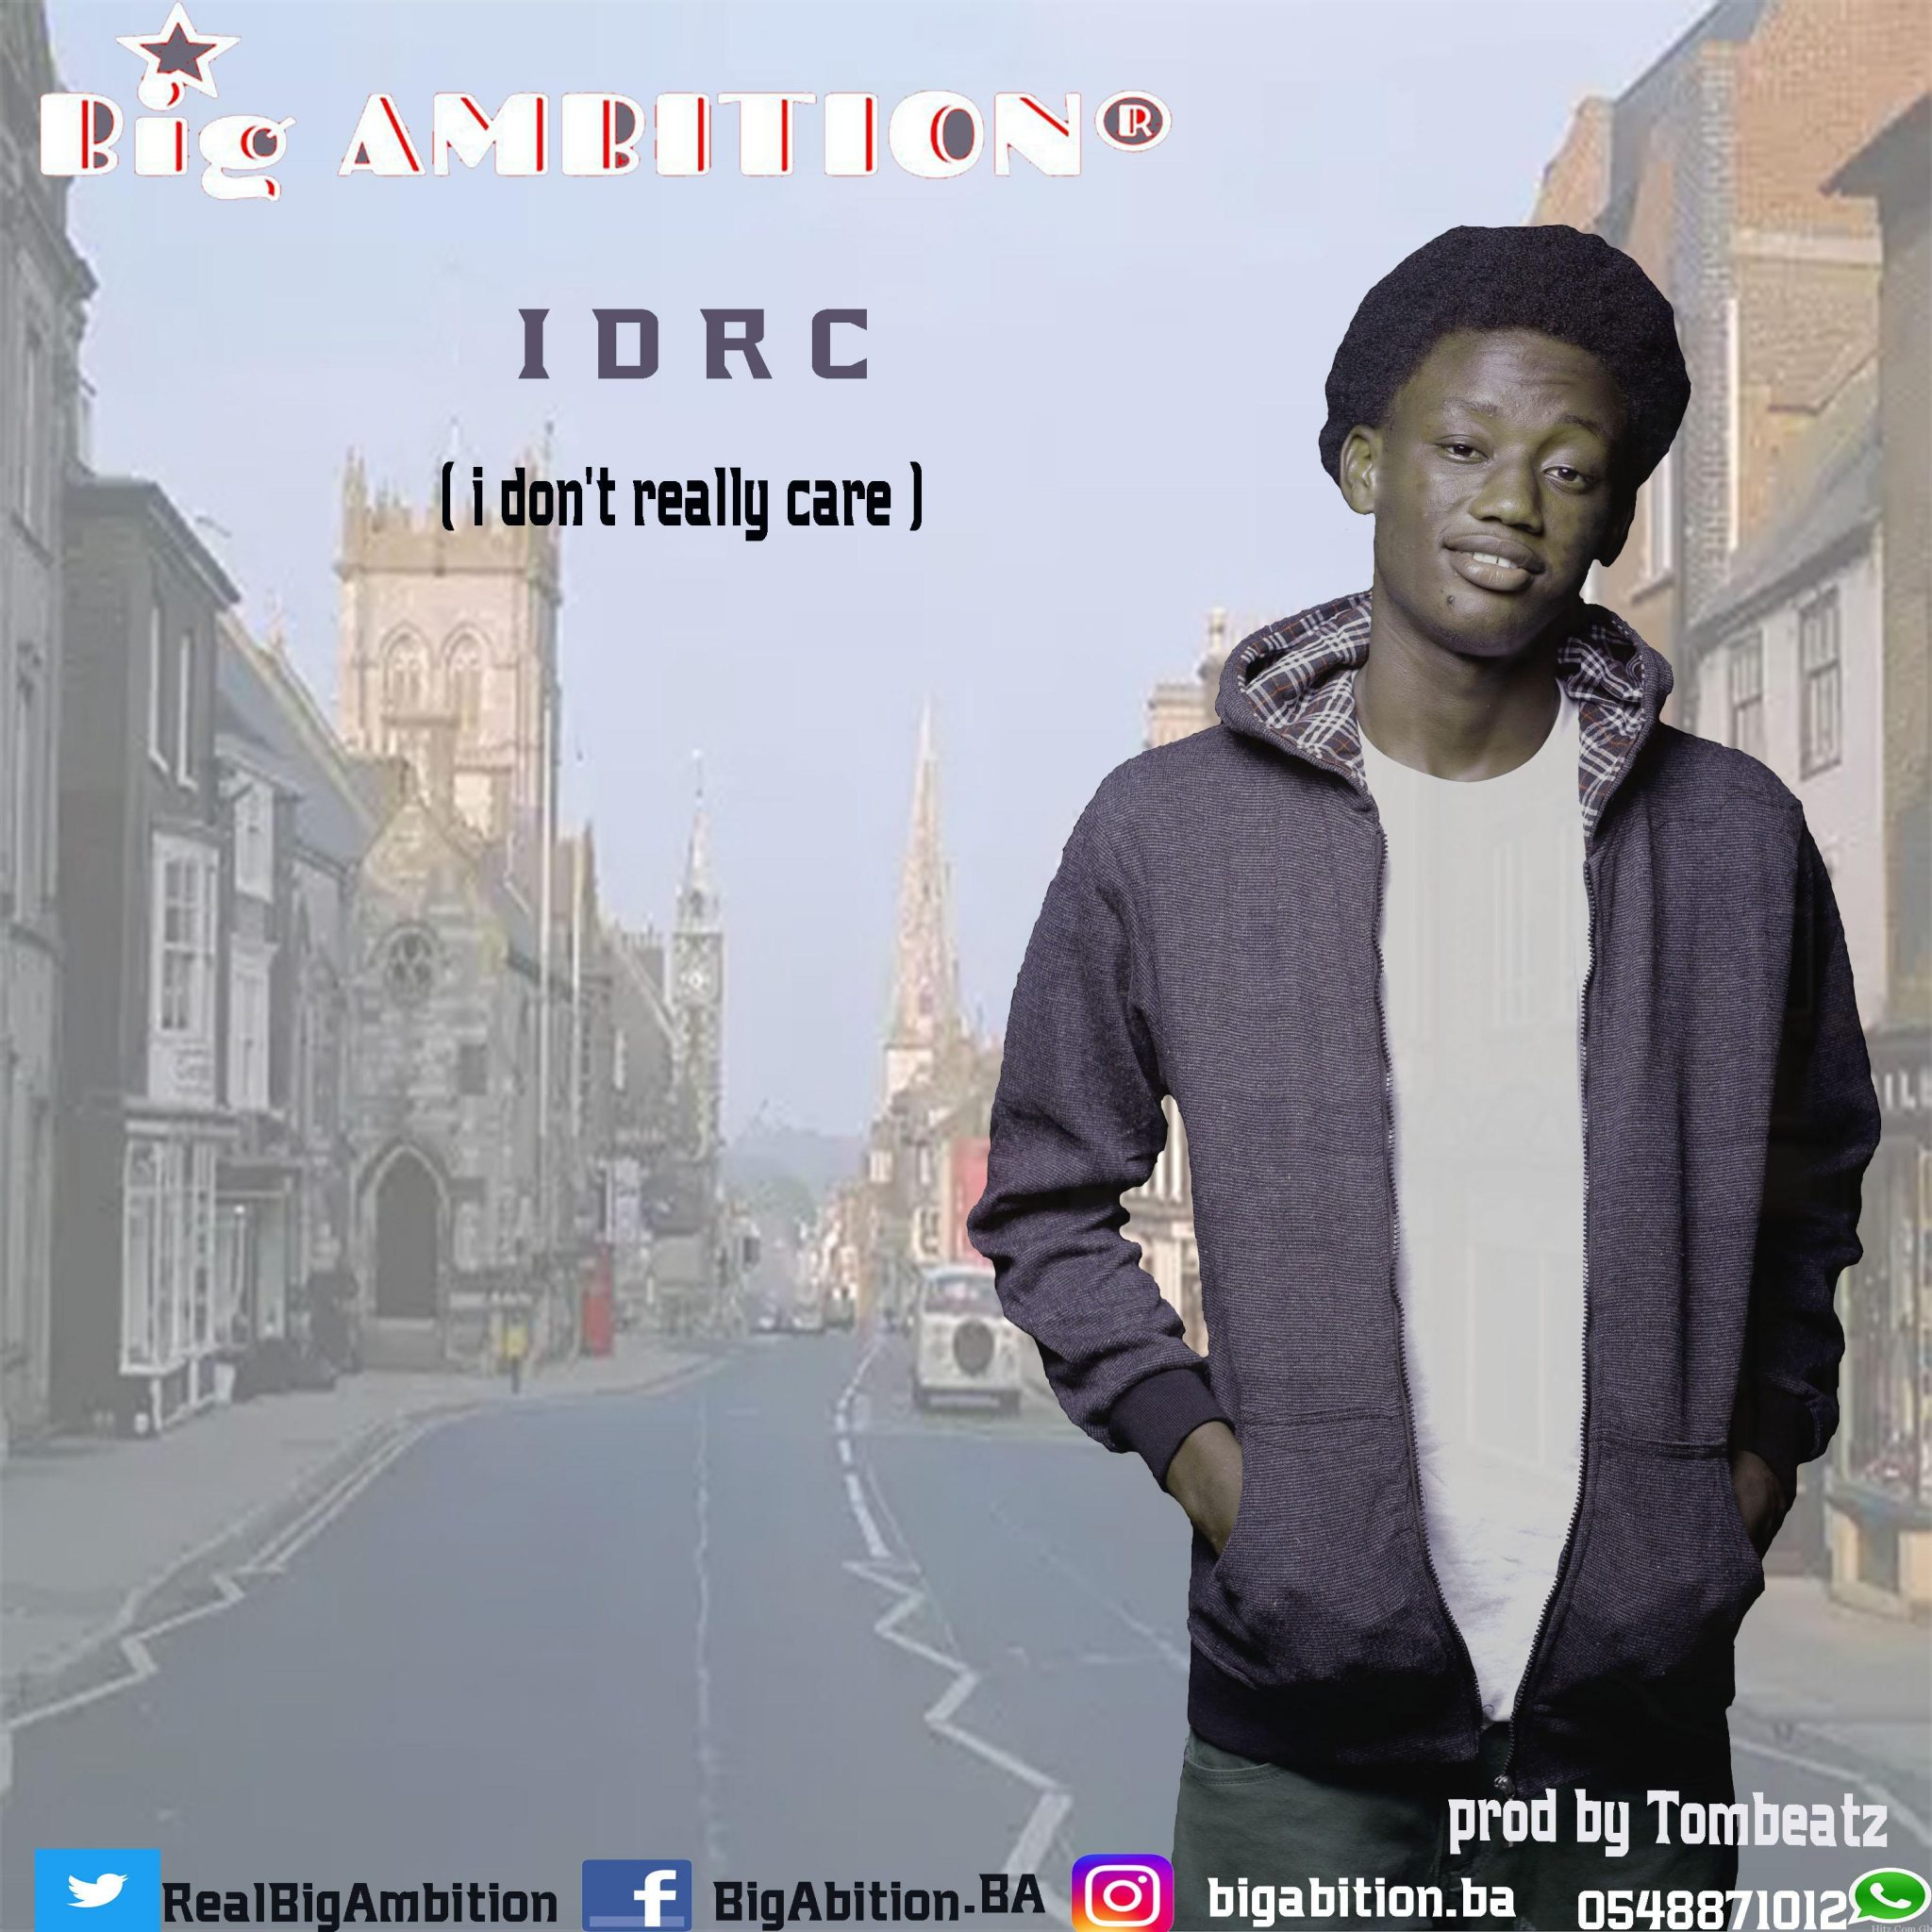 BiG Ambition - I Don't Really Care (IDRC) (Prod by Tombeatz)